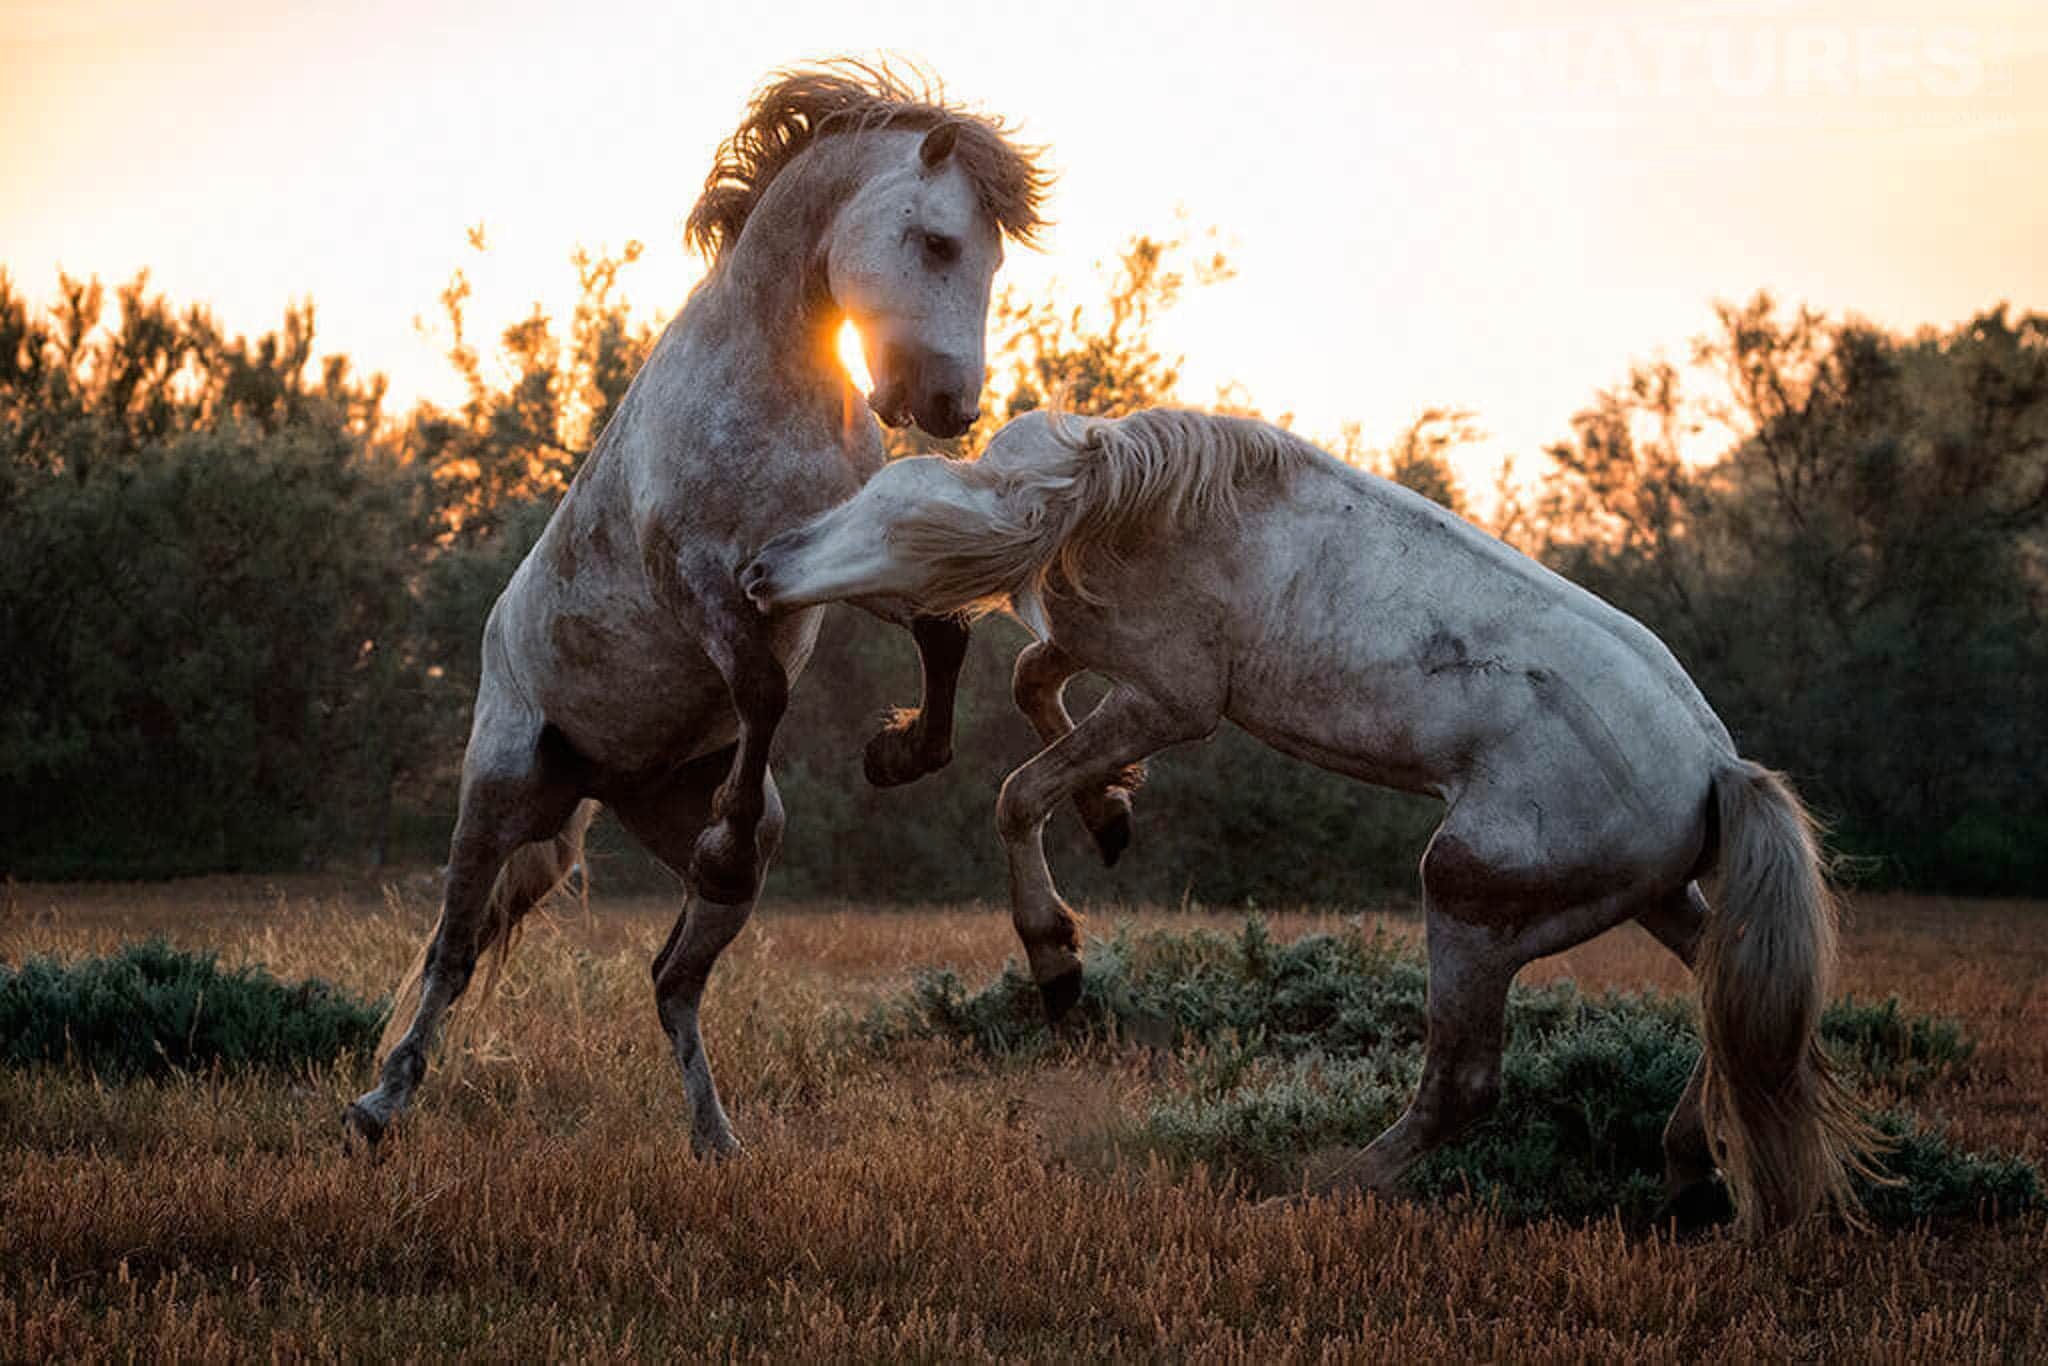 Two stallions fighting at sunset typical of the type of image that may be captured during the NaturesLens Wild White Horses of the Camargue Photography Holiday